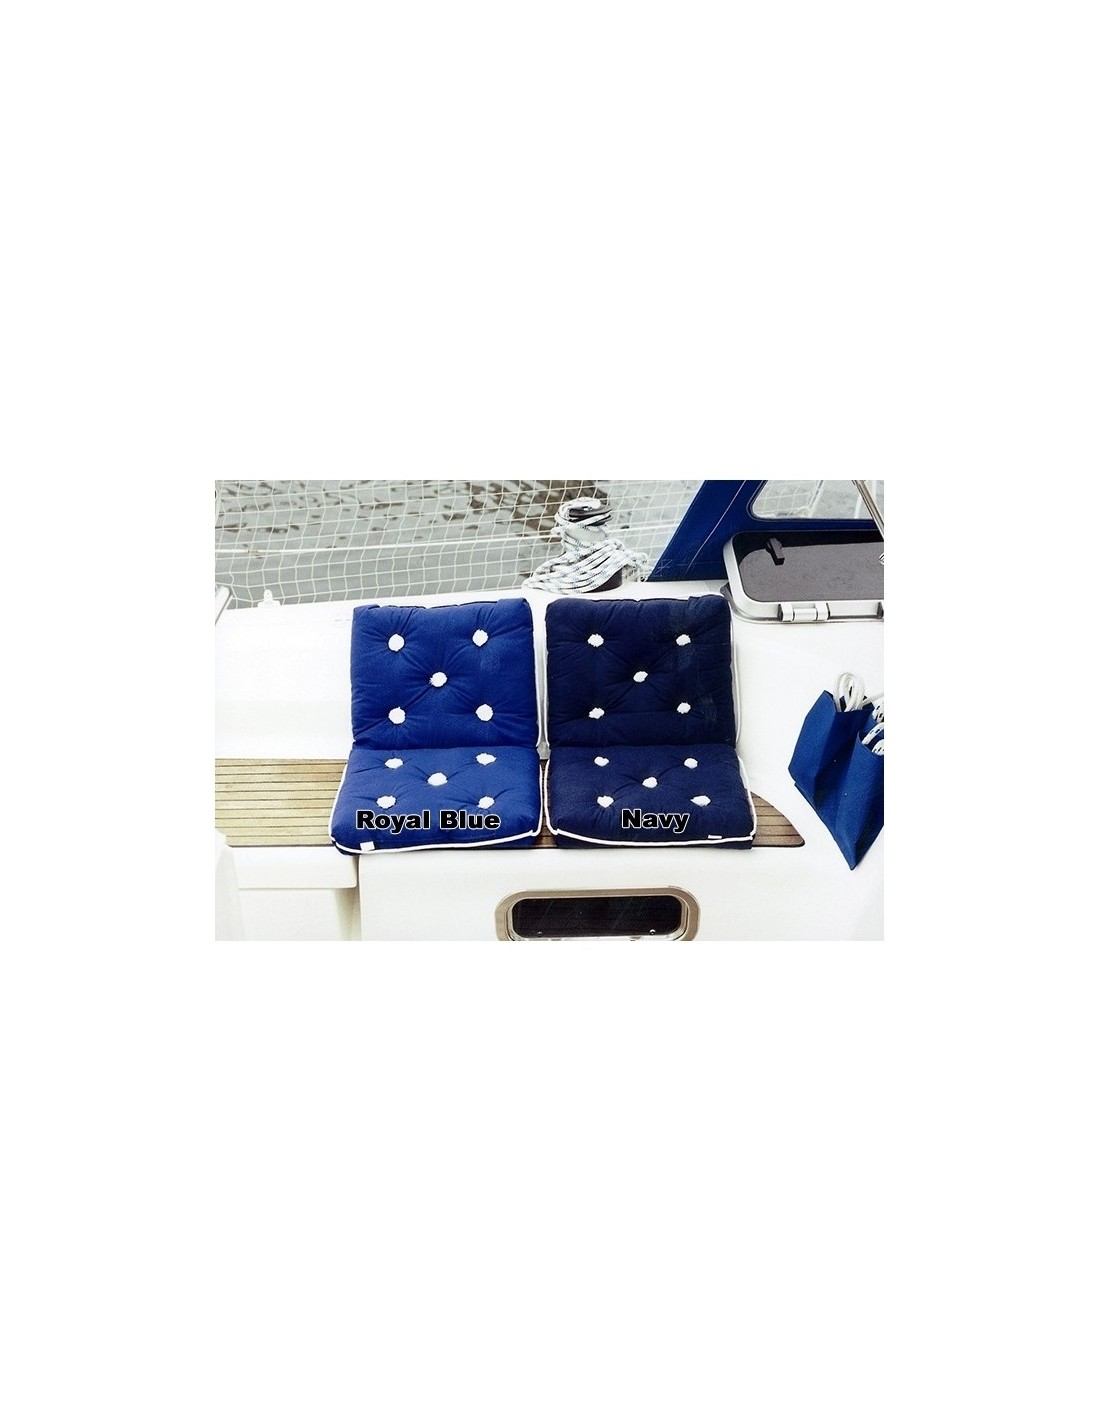 Kapok Kussen - Dubbel - Royal Blue - The Captain's Collection - Textiel - 47.1801